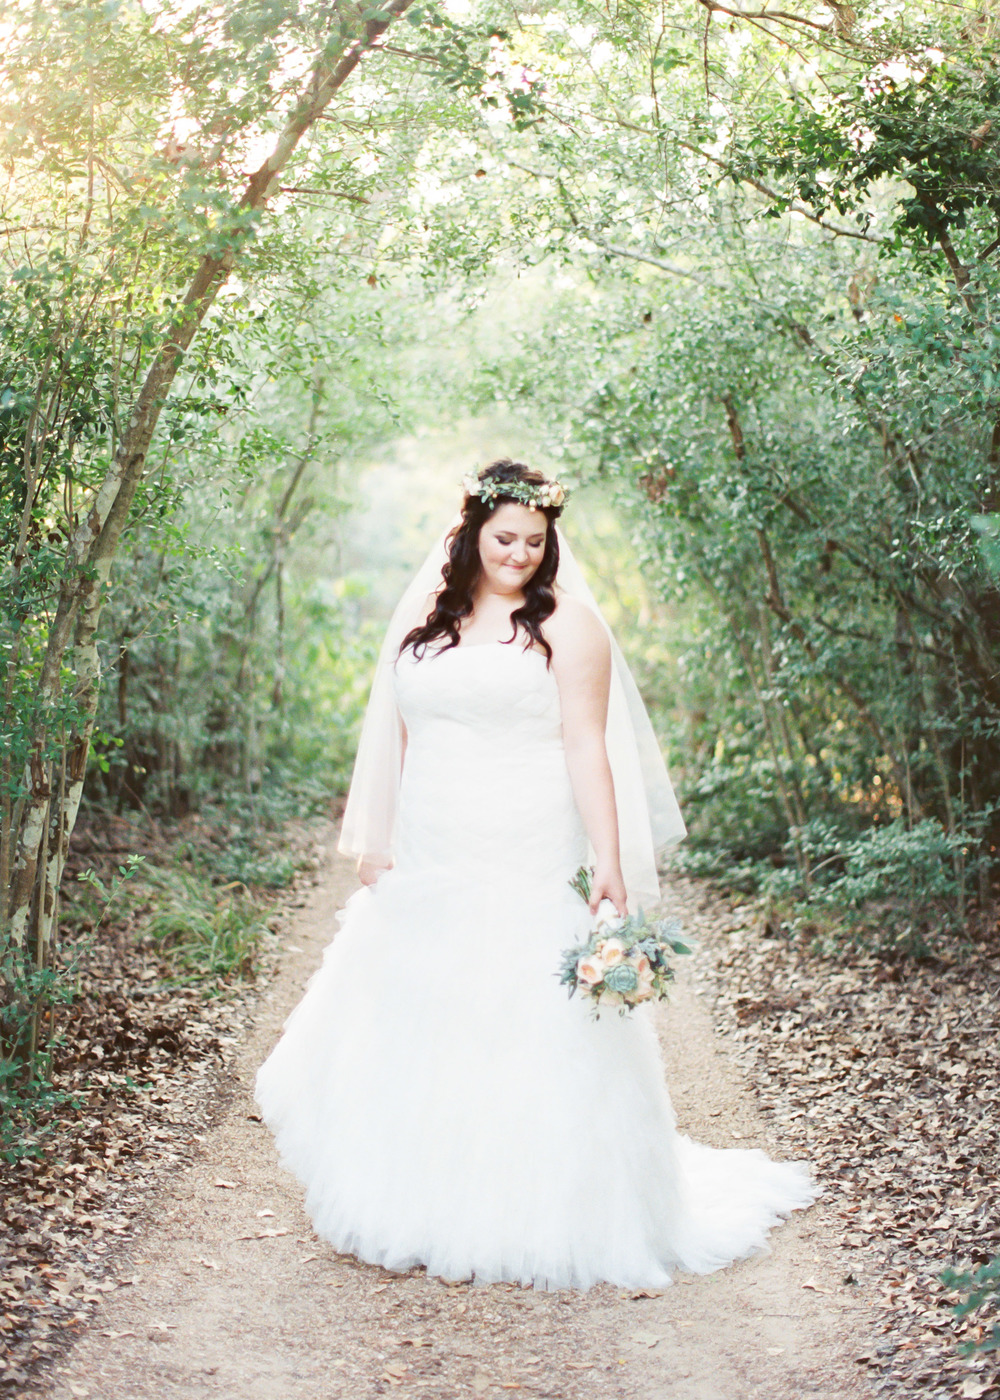 Sarah Best Photography - Elizabeth's Bridals - 7F Lodge-112.jpg